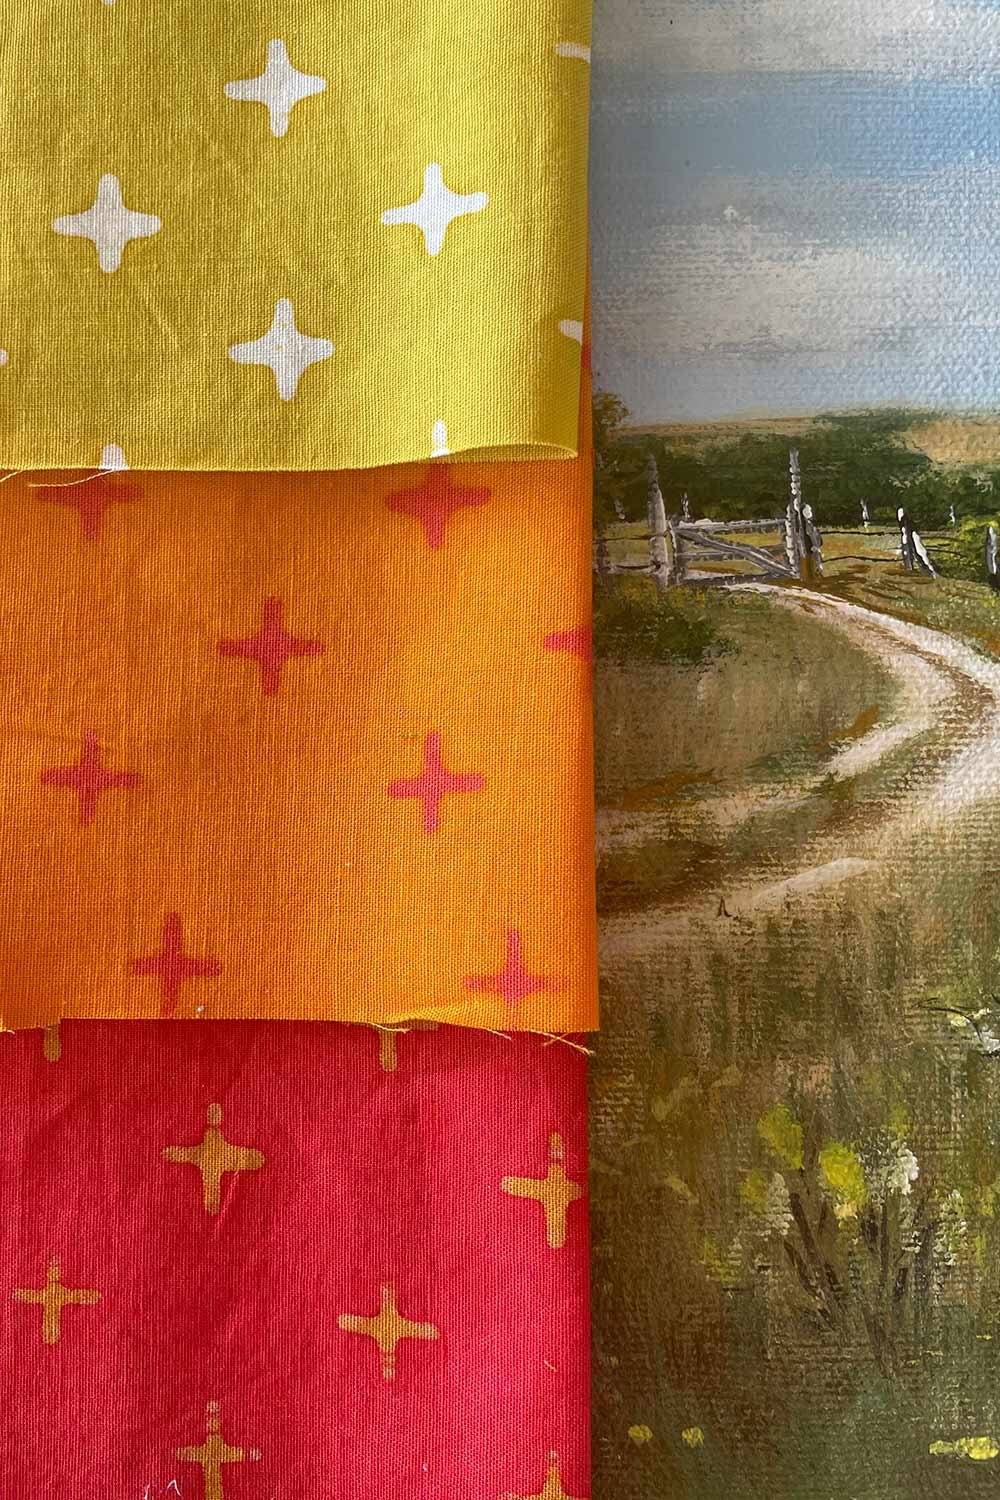 pulsar, a handcrafted collection bundle of fabric sitting on a painting